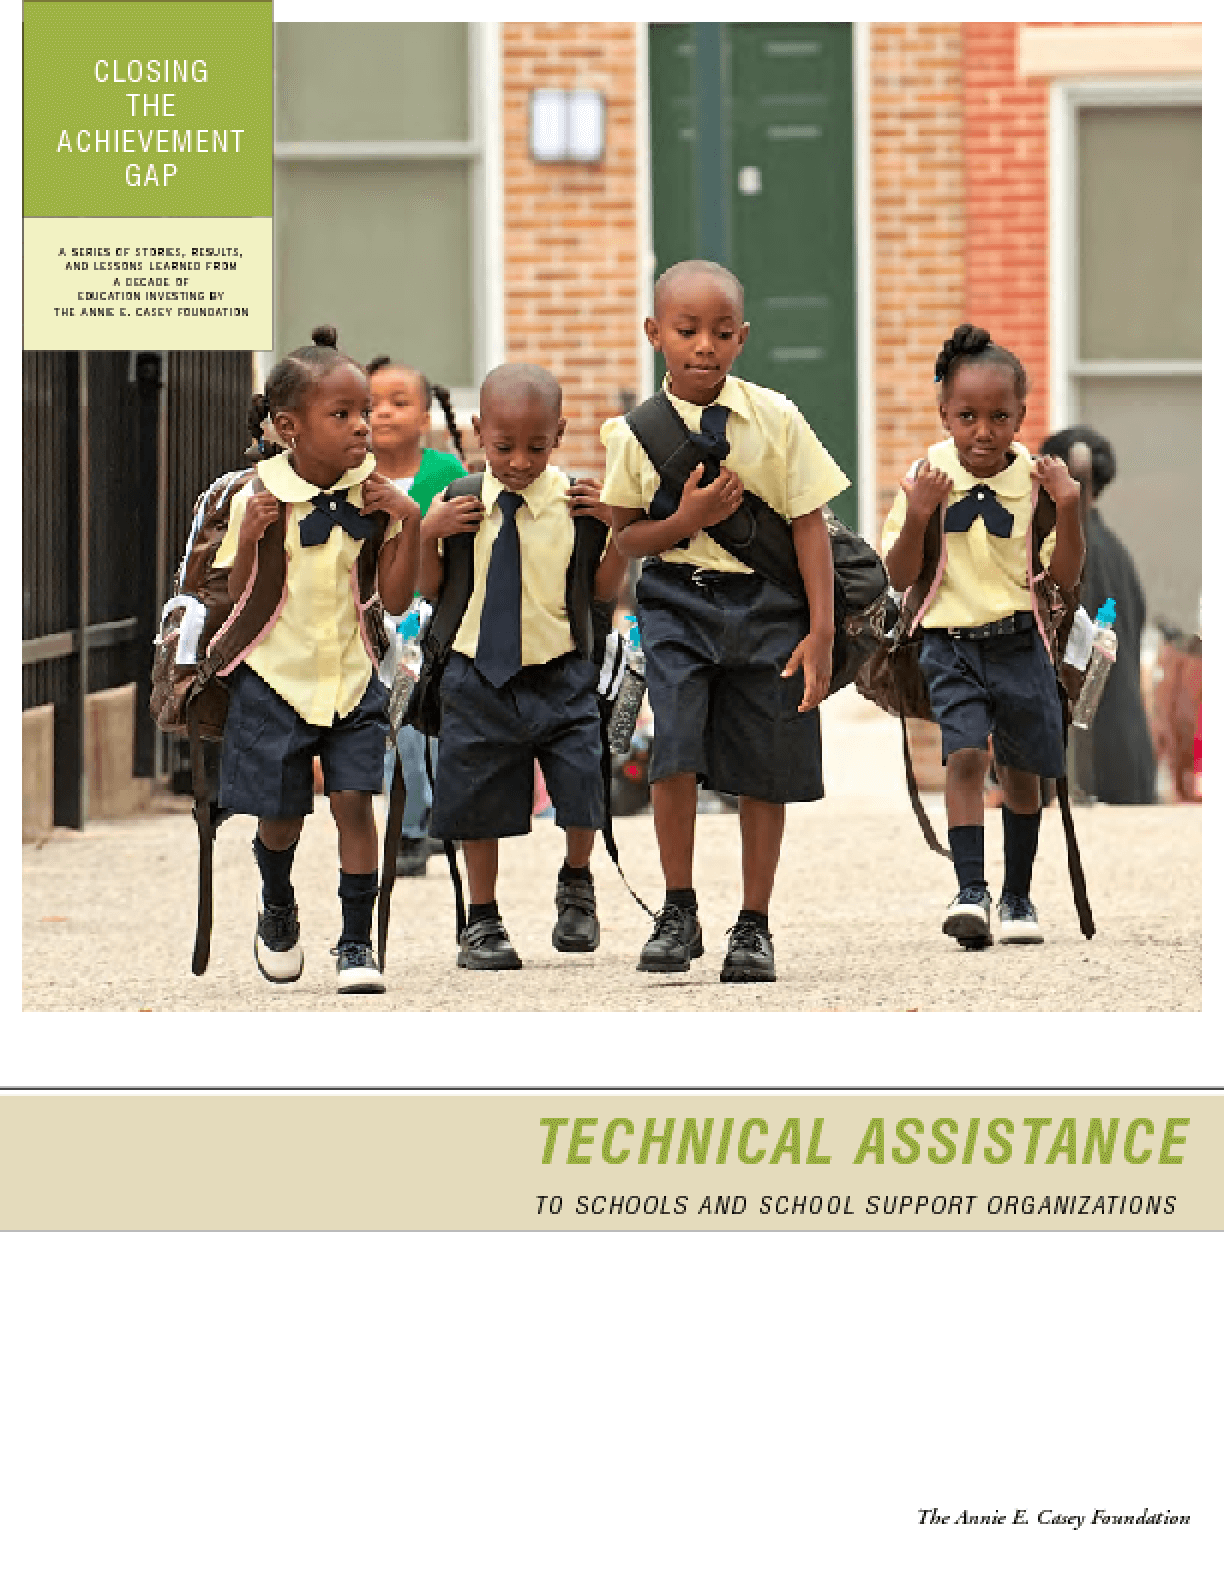 Closing the Achievement Gap: Technical Assistance to Schools and School Support Organizations